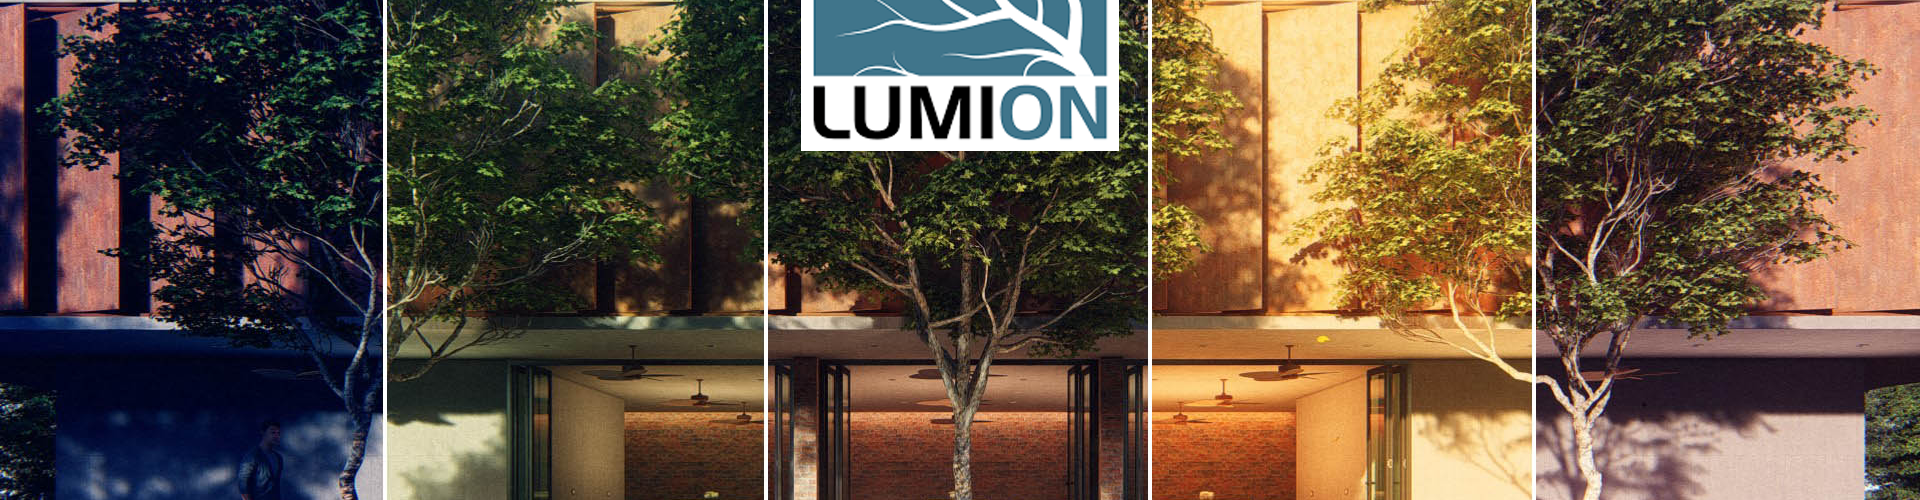 Download Lumion 8 with Crack Full Torrent - Sam Library